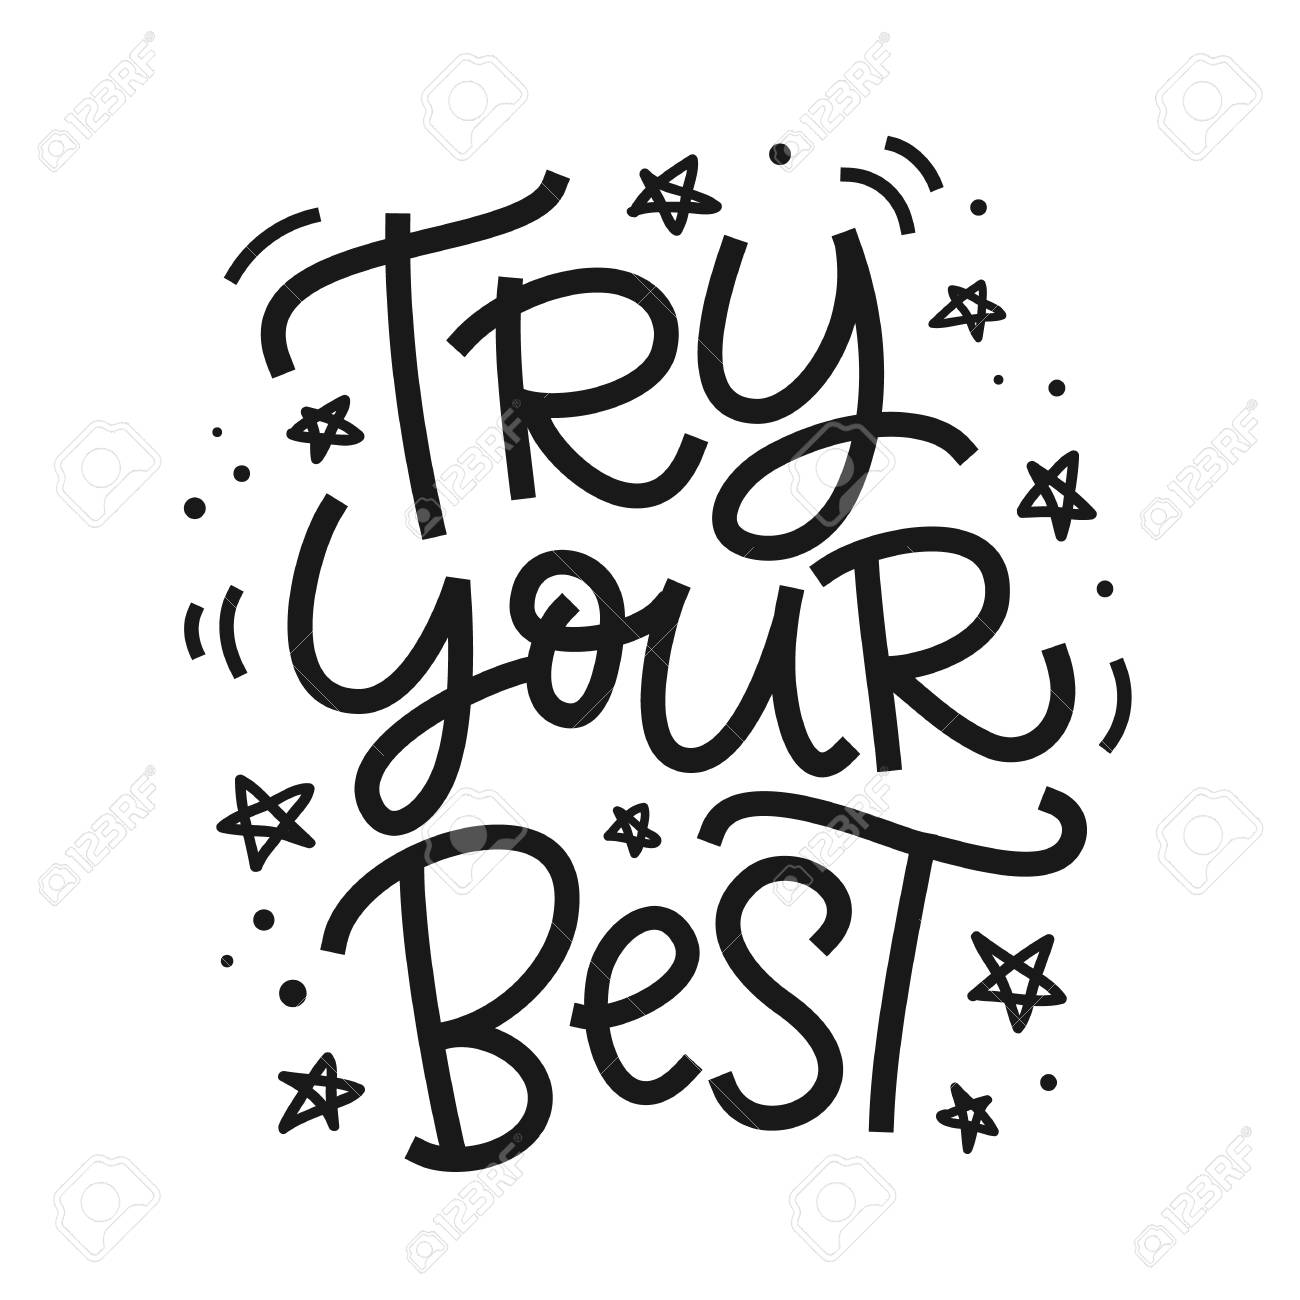 hight resolution of try your best freehand poster hand lettering motivational phrase inspirational positive quote isolated